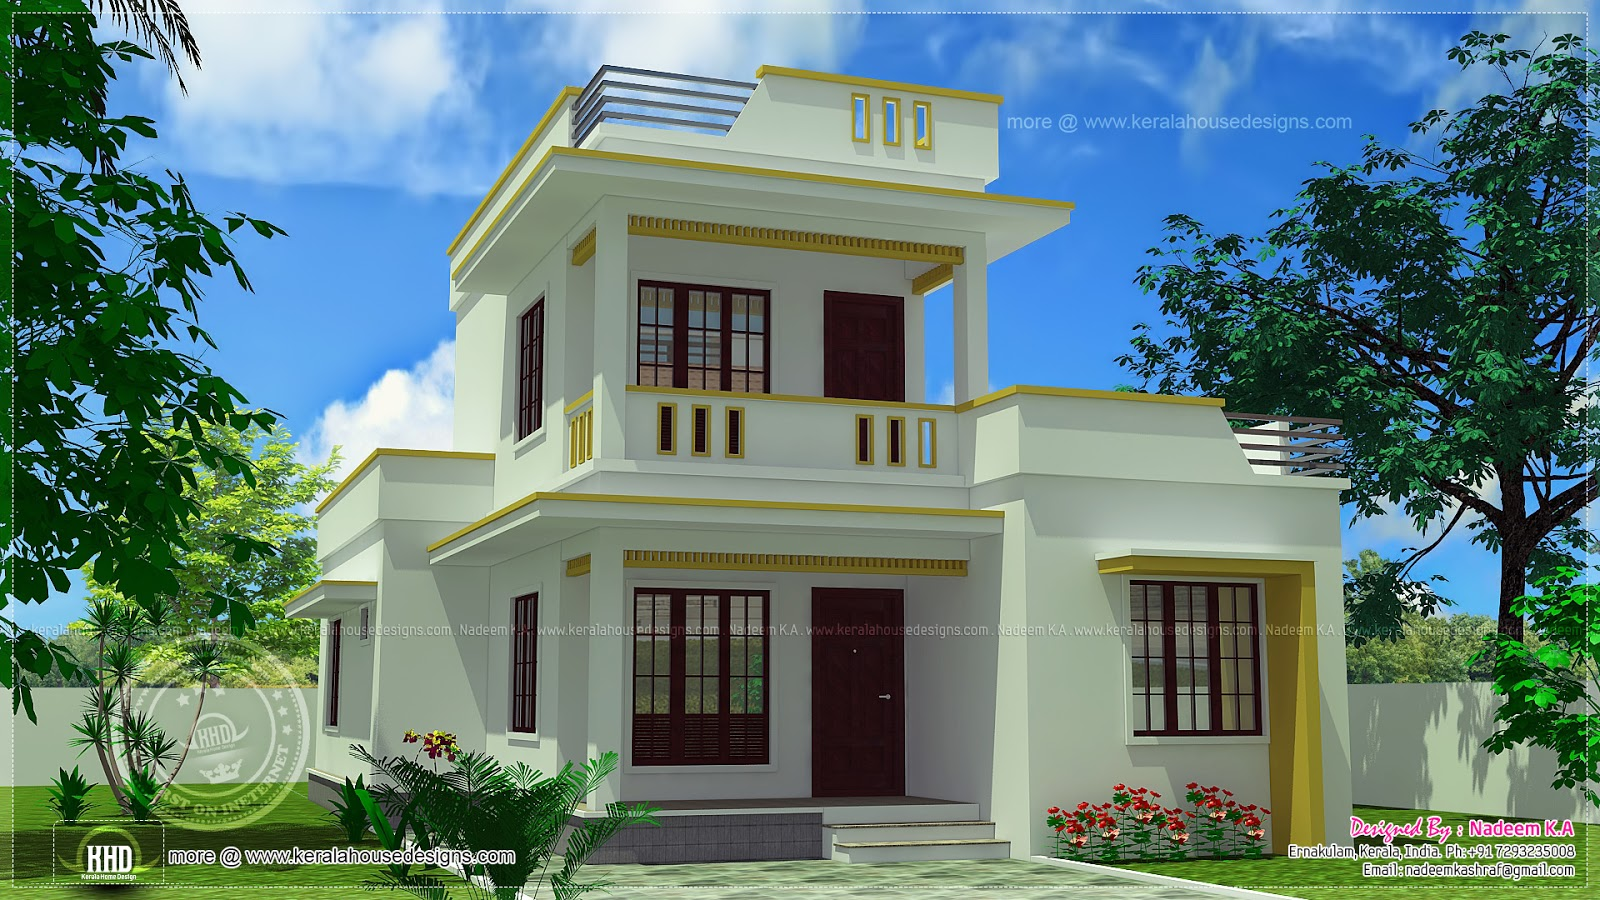 August 2013 kerala home design and floor plans for Simple home design ideas